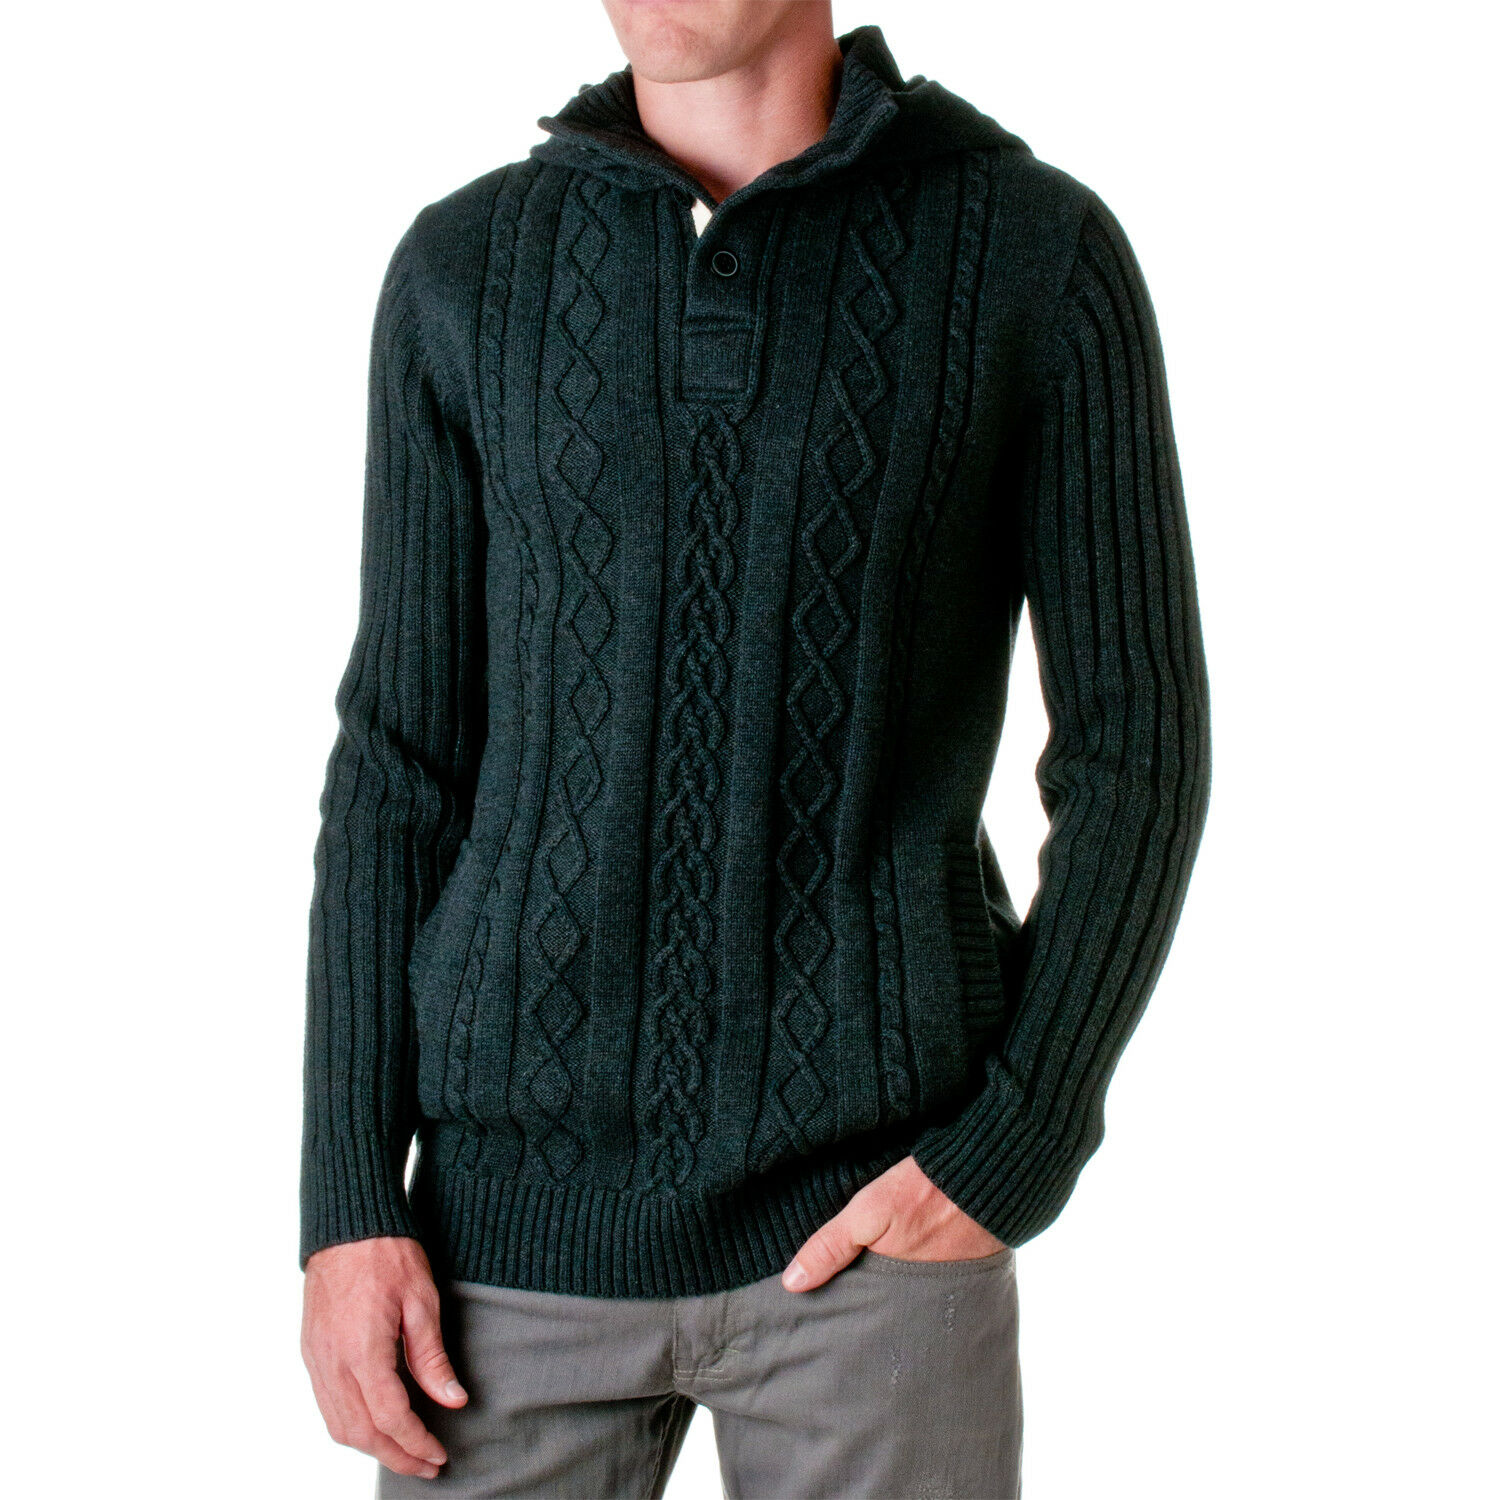 D-LUX Uomo's Cotton Cable-Knit Cable-Knit Cable-Knit Hooded Sweater 225d1f